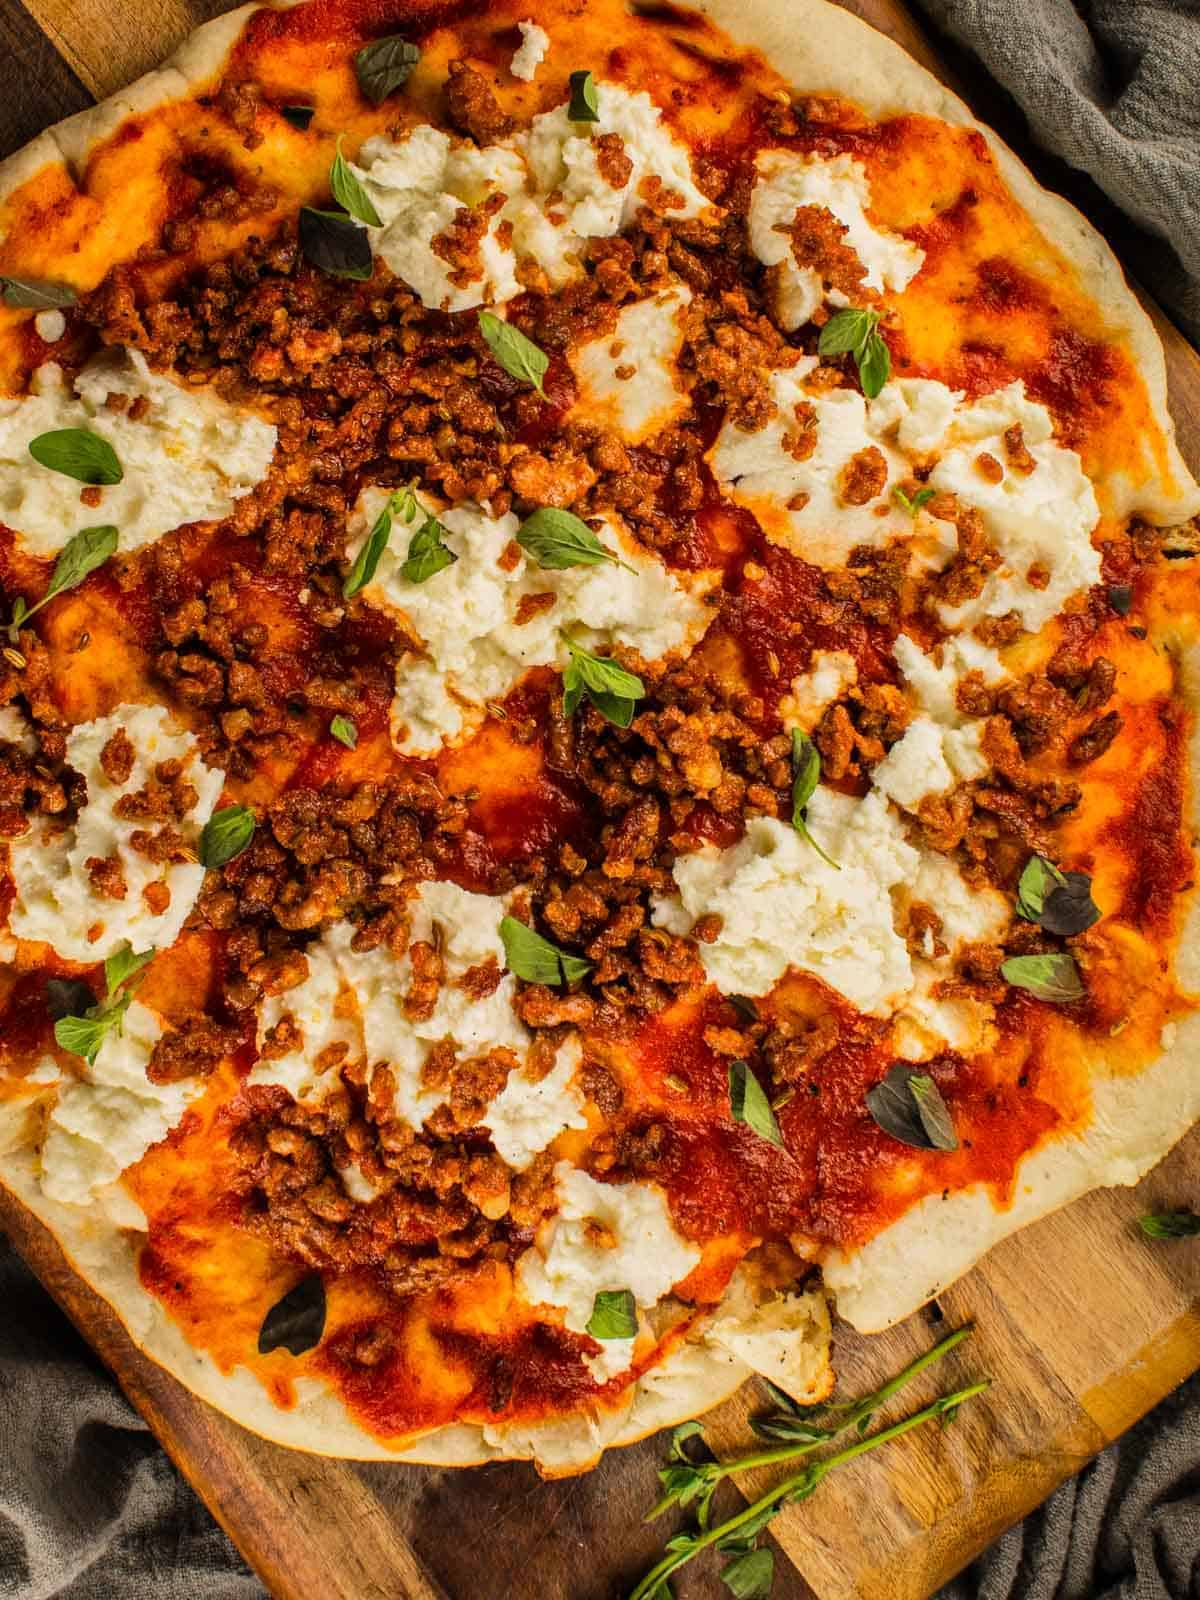 grilled pizza with marinara, ricotta, sausage and oregano on a cutting board